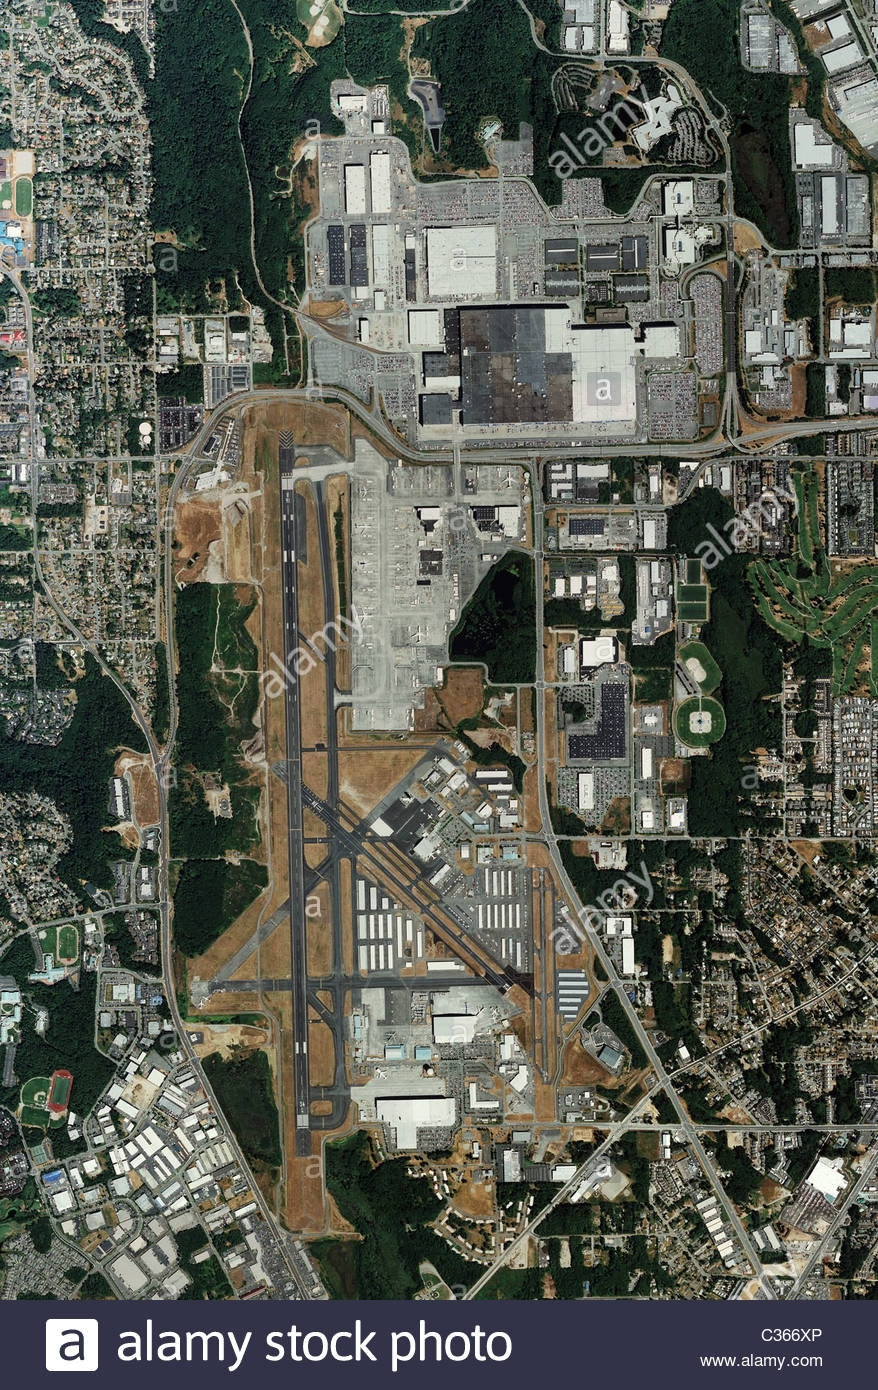 Aerial Map View Boeing Everett Factory And Paine Field throughout Boeing Everett Factory Map